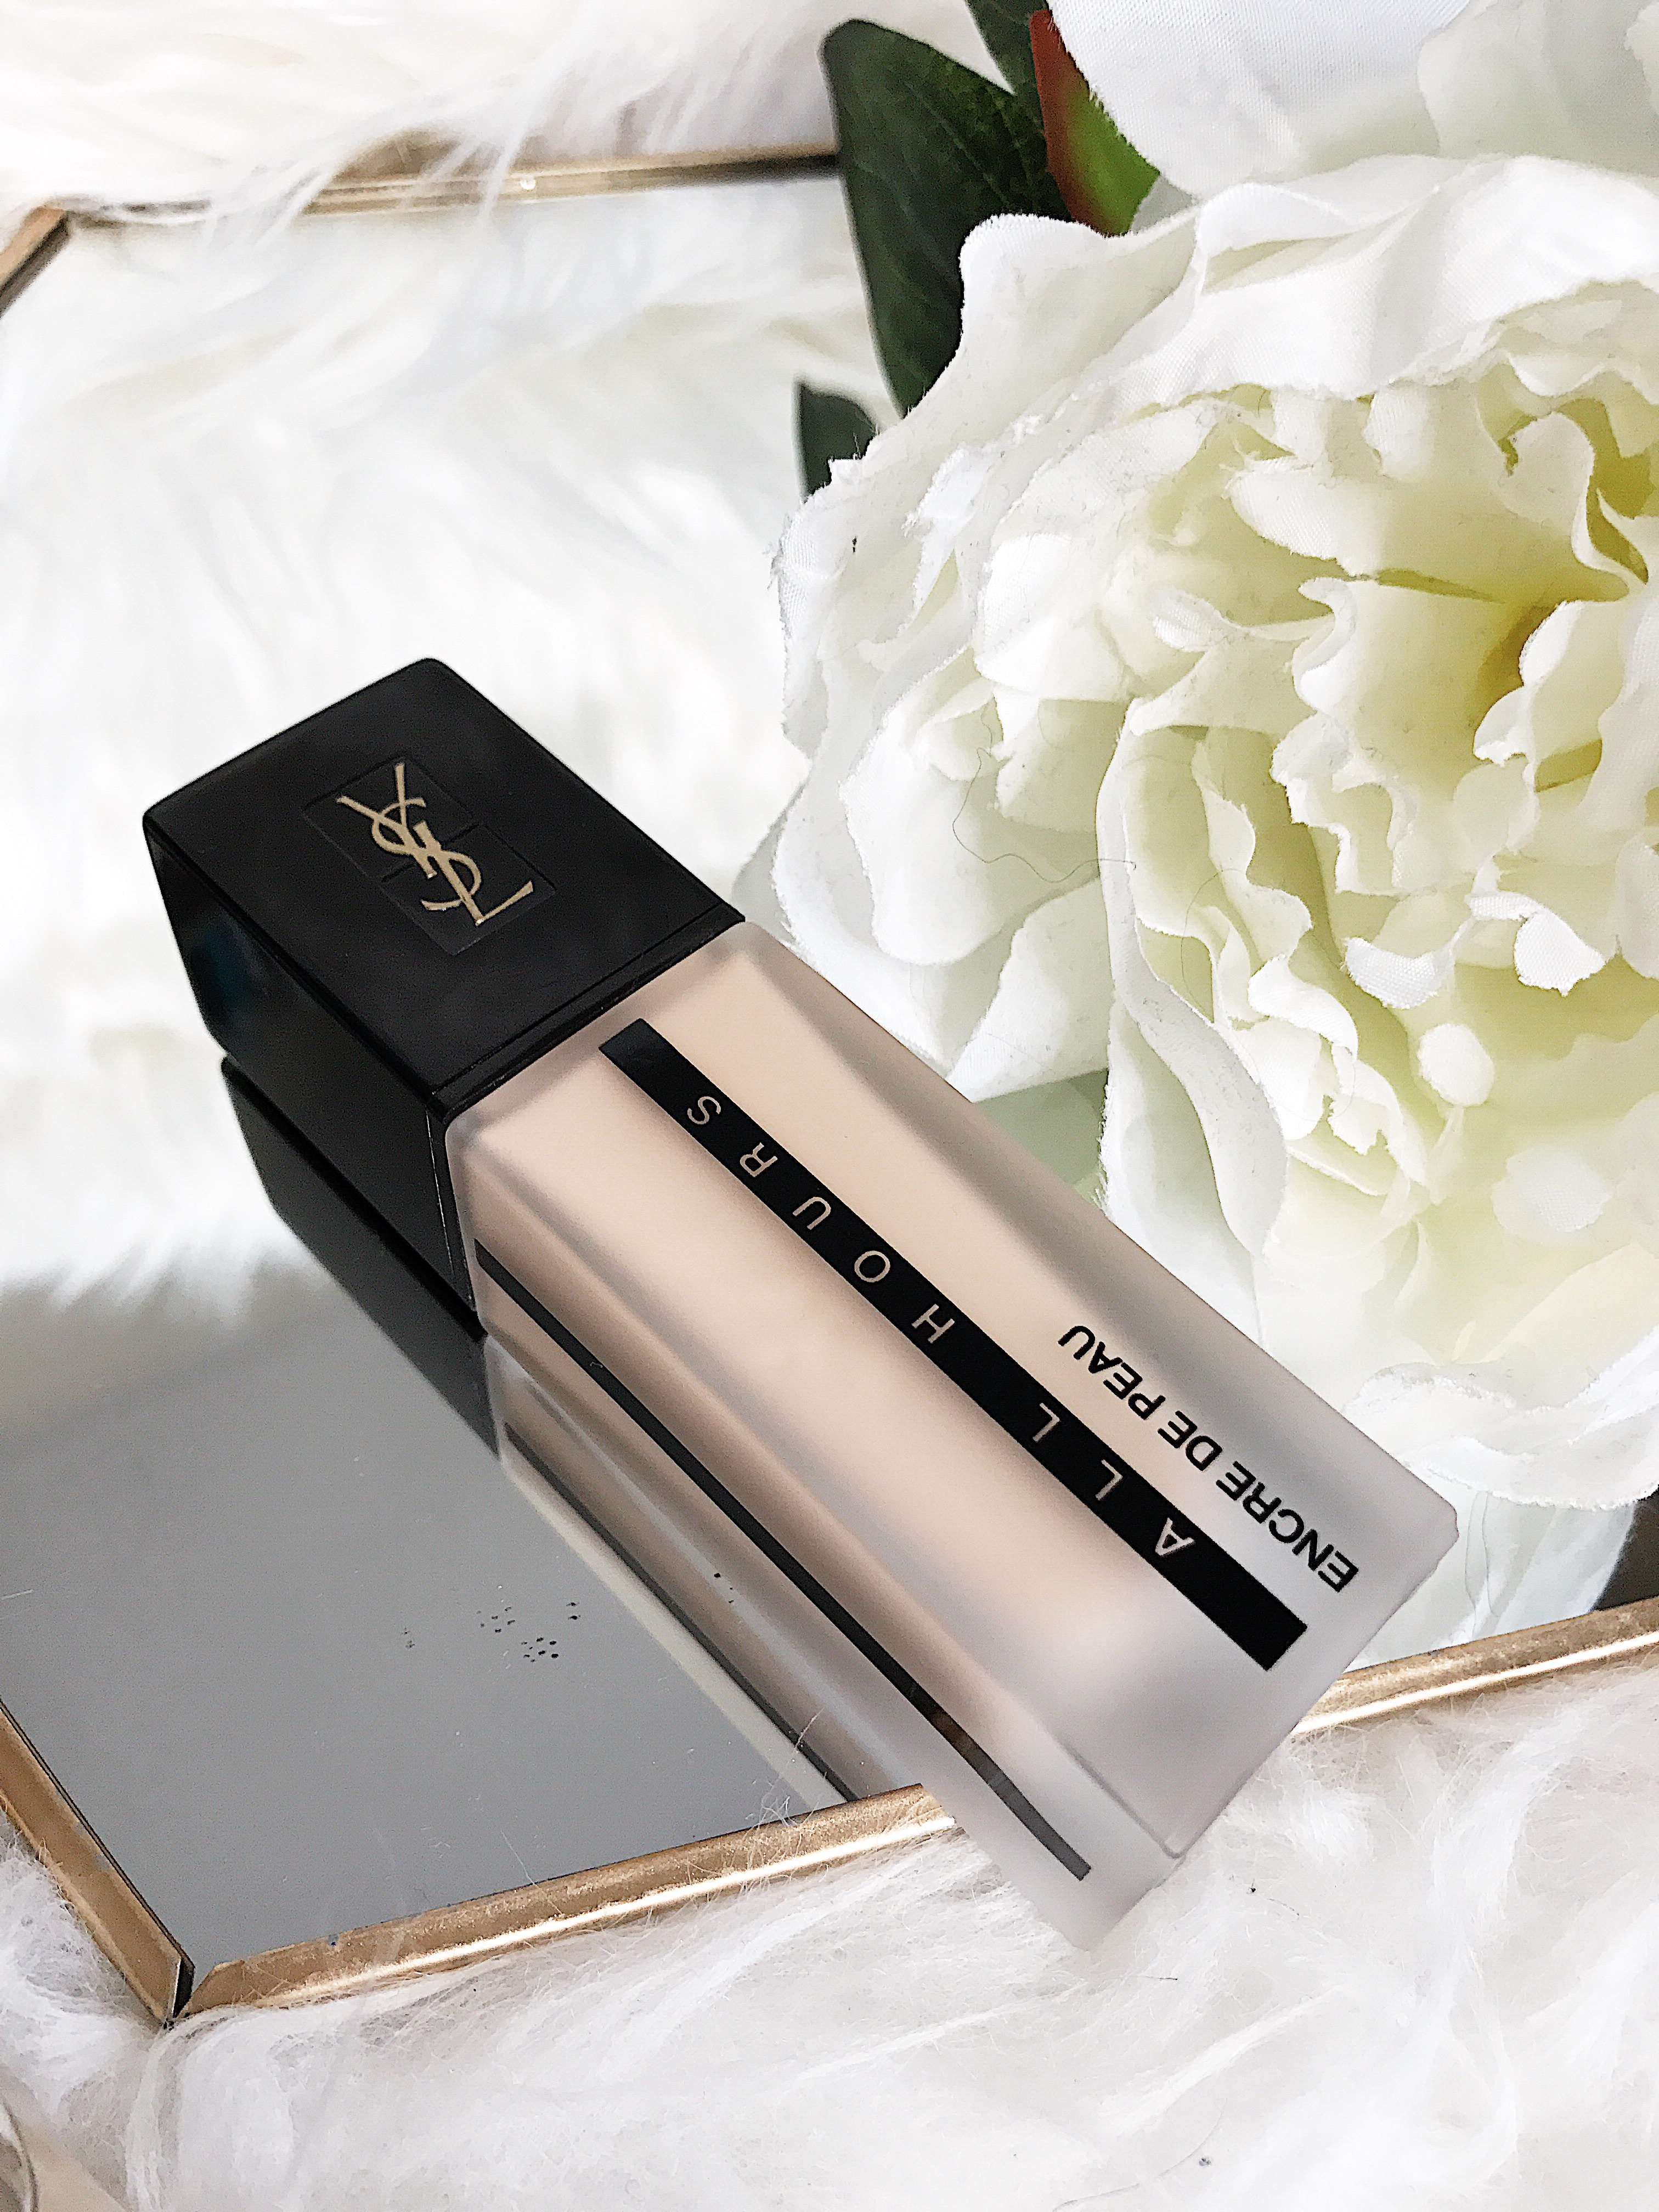 YSL All Hours Foundation – A Review